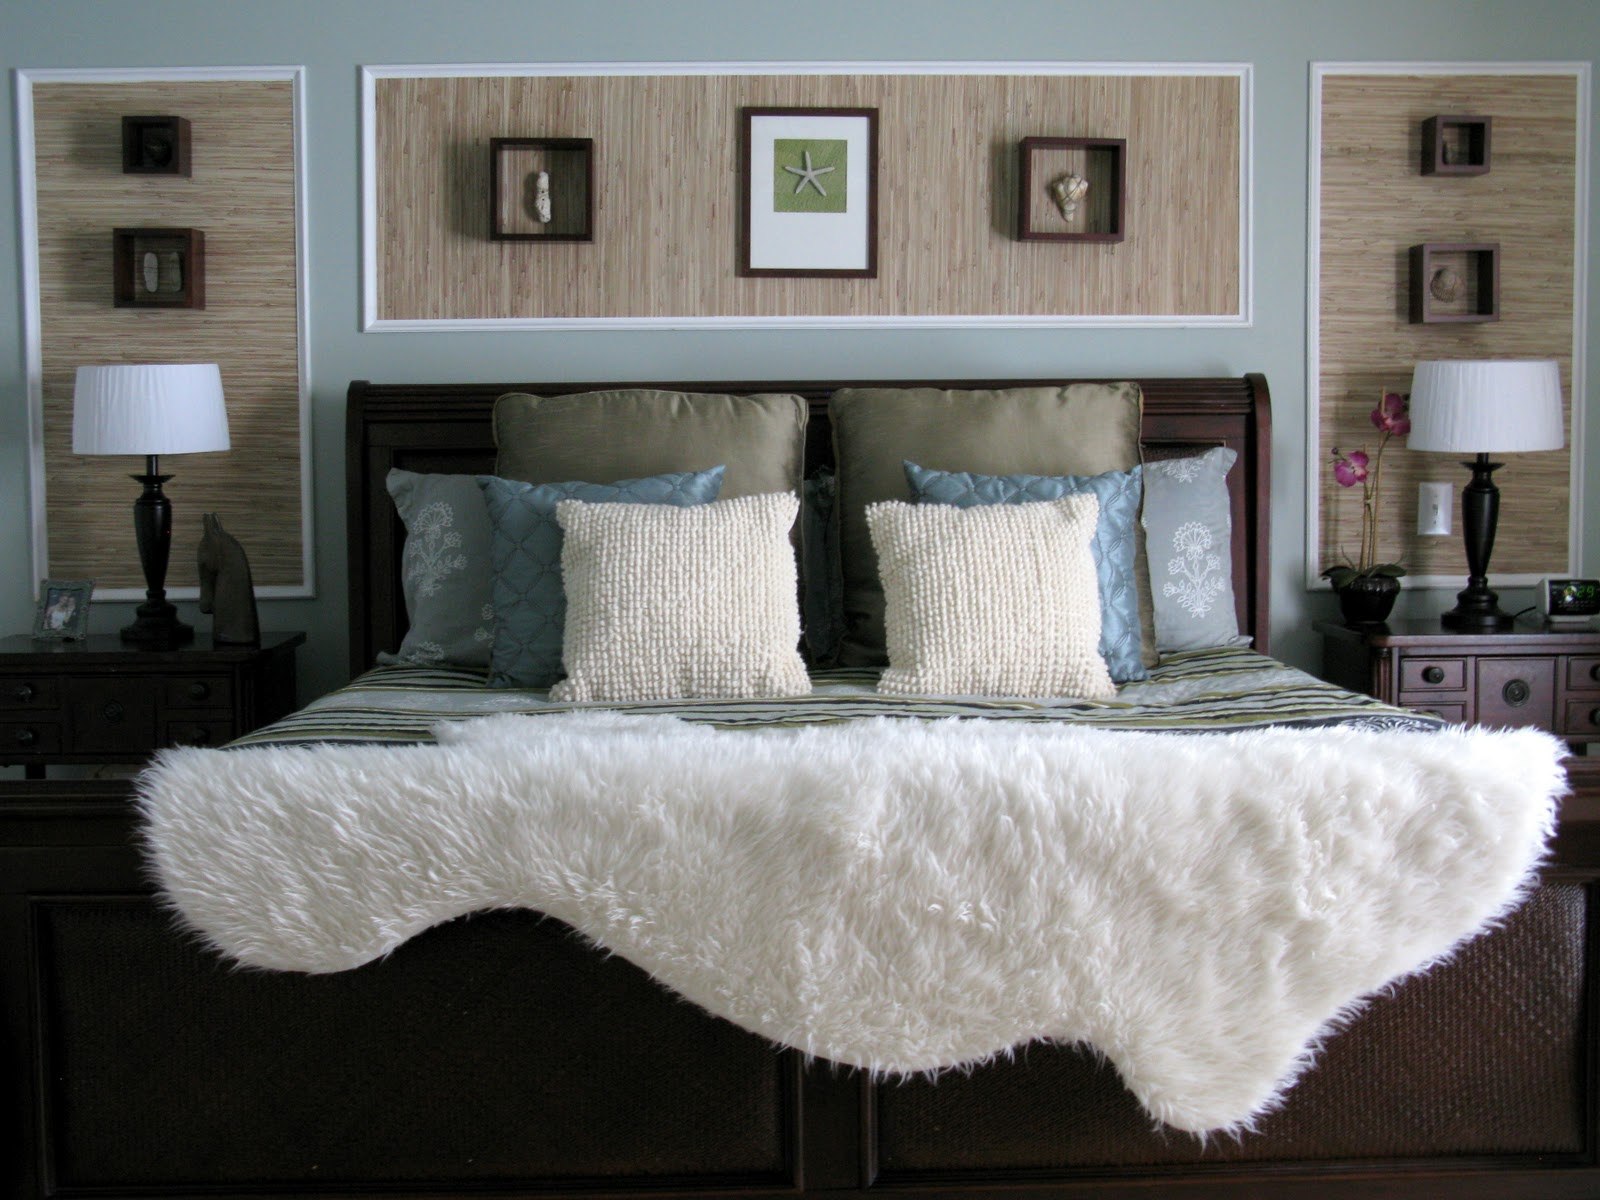 Bedrooms by Houzz Readers & My Headboard/Canopy Ideas Are On HGTV.com title=